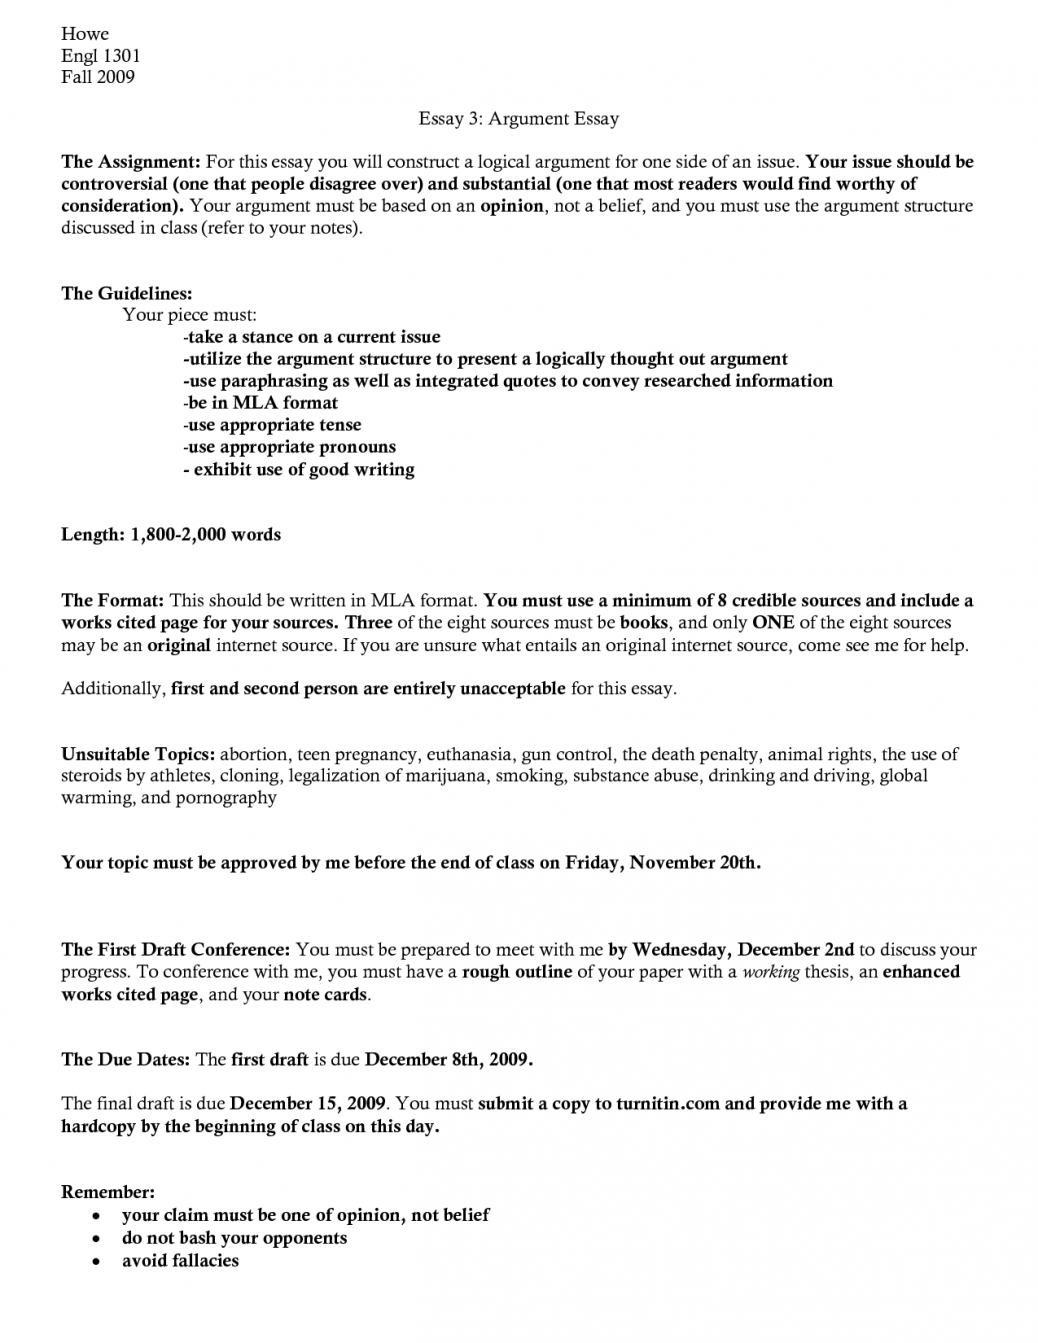 028 Essay Template Splendi Persuasive Mla Format Example Image Inspirations Argument Outline 477512 Research Paper 1038x1343 Papers Astounding Style Sample Guide To Writing In Full